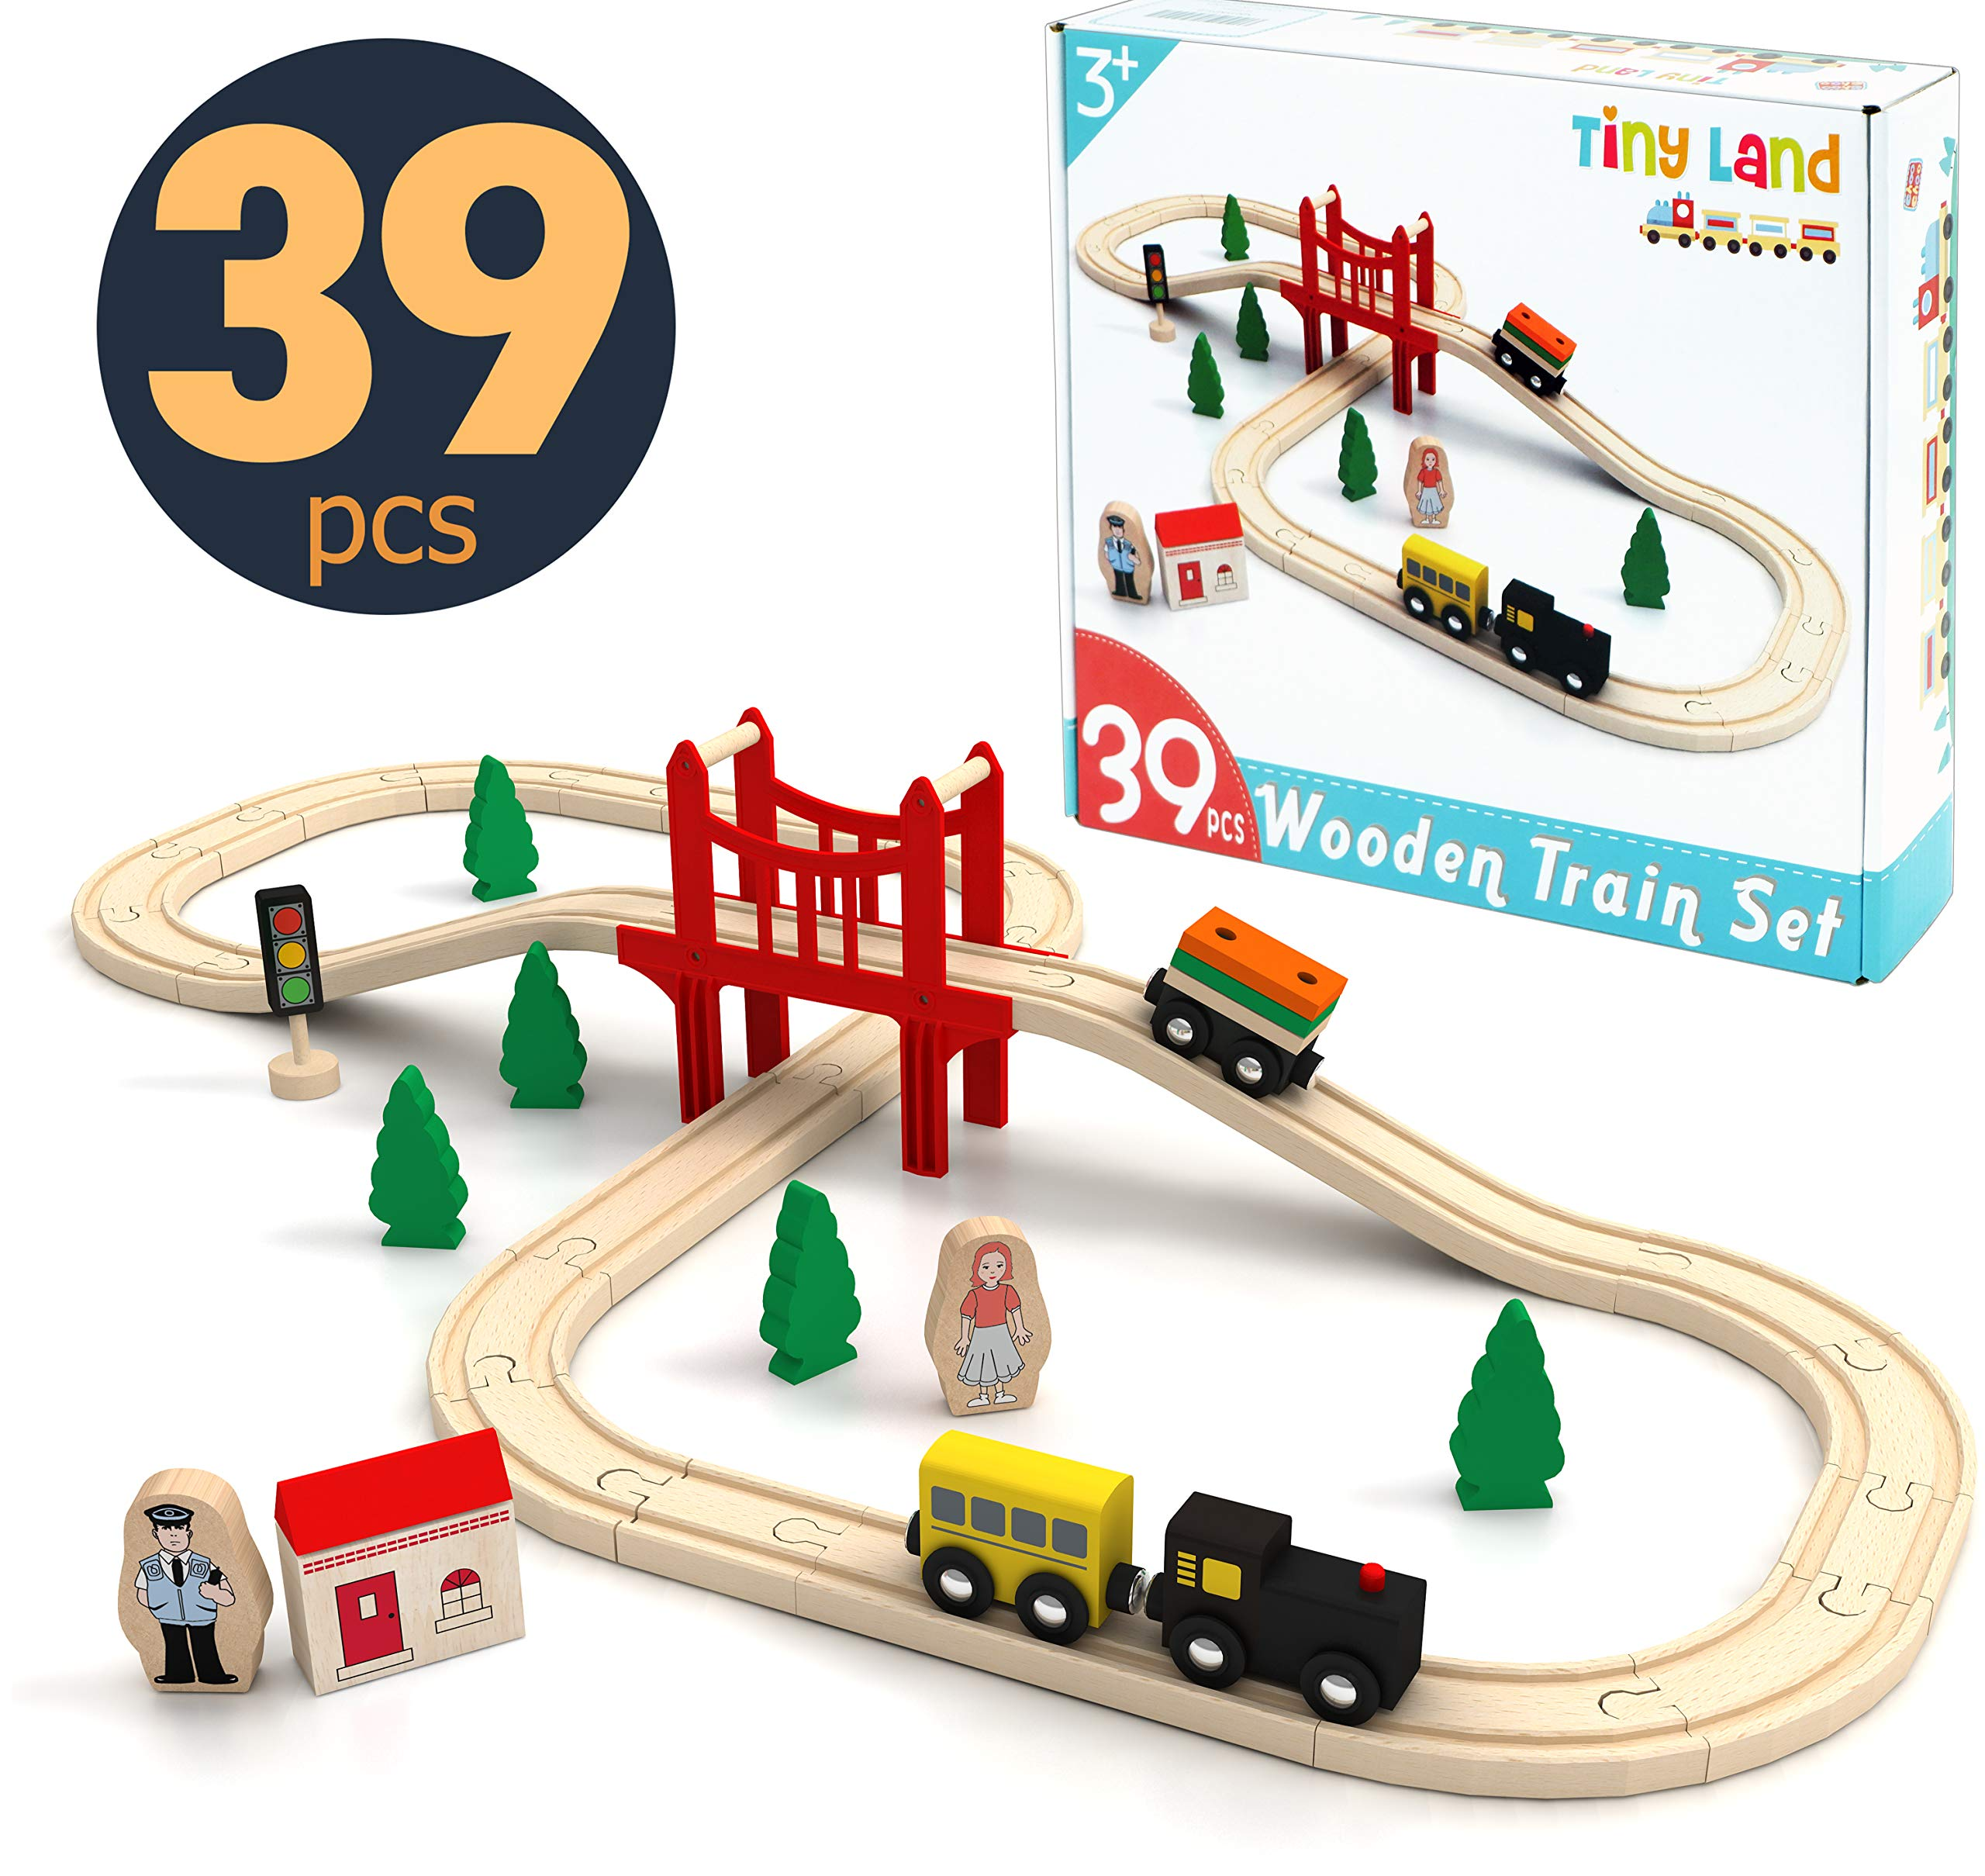 Wooden Train Set Starter 39-Piece Track Pack with Bridge Fits Thomas Brio Chuggington, Engine & Passenger Car, Kids Friendly Building & Construction-Expandable, Changeable-Fun for Girls & Boys by Tiny Land